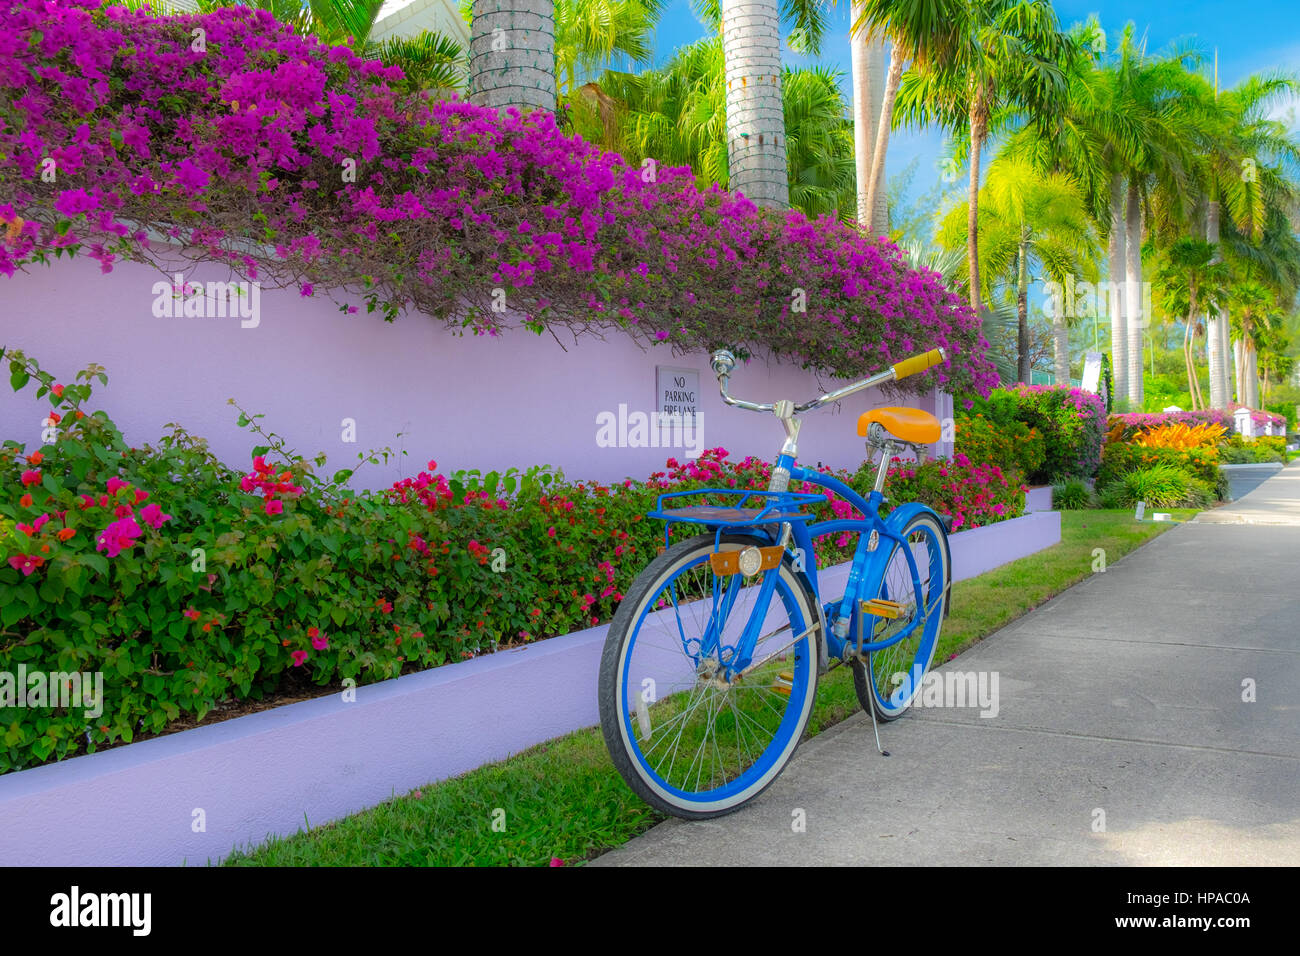 Photographer's Bike Park On A Pavement In Grand Cayman - Stock Image